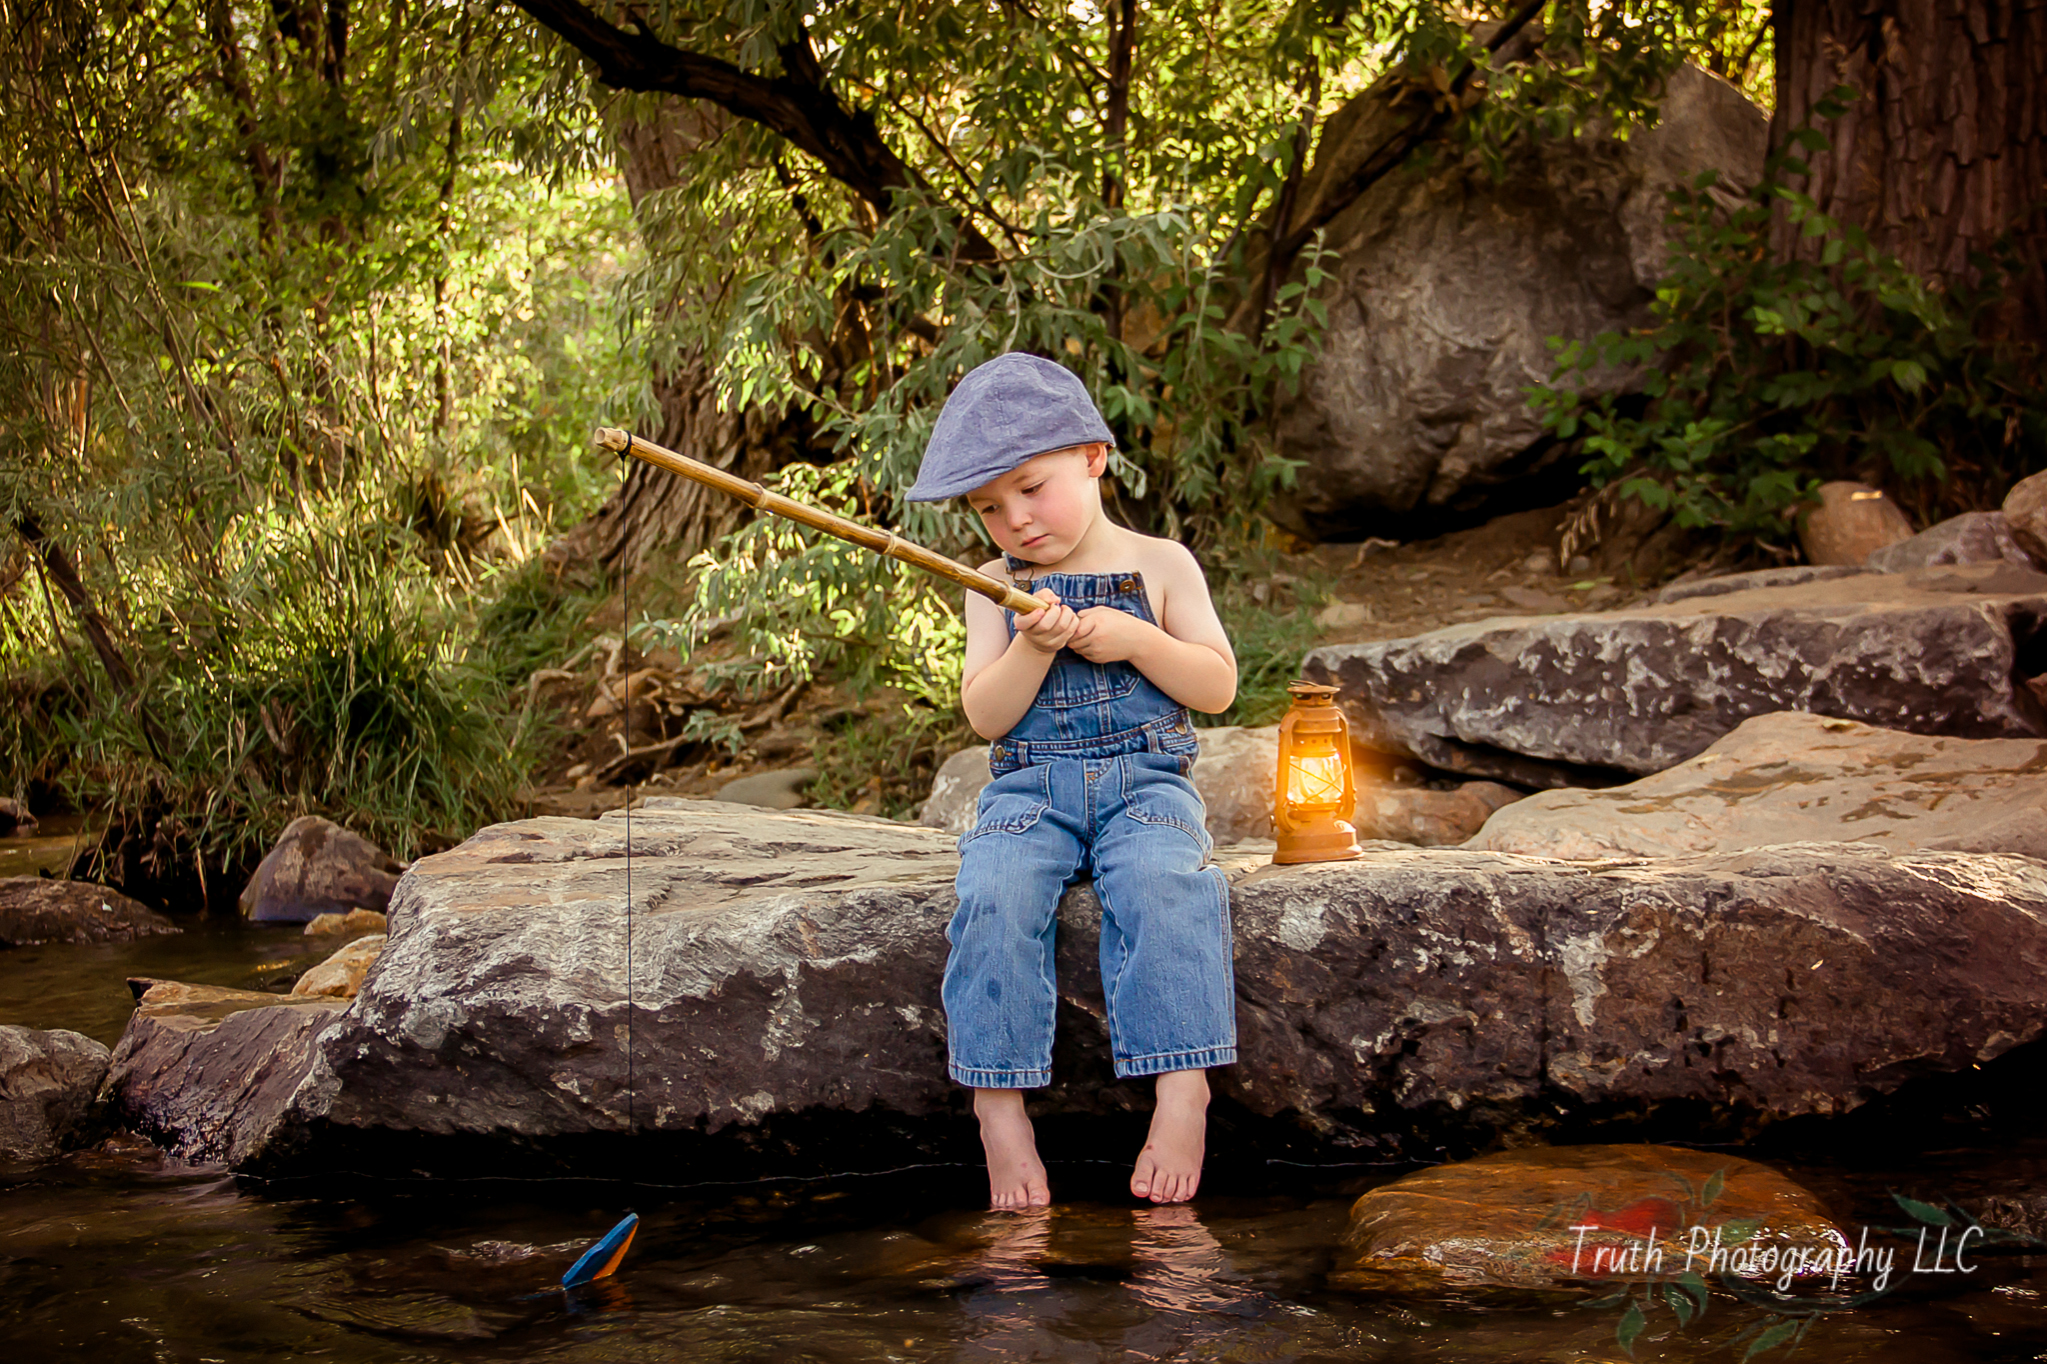 Truth-Photography-Denver-CO-fishing-photo.jpg